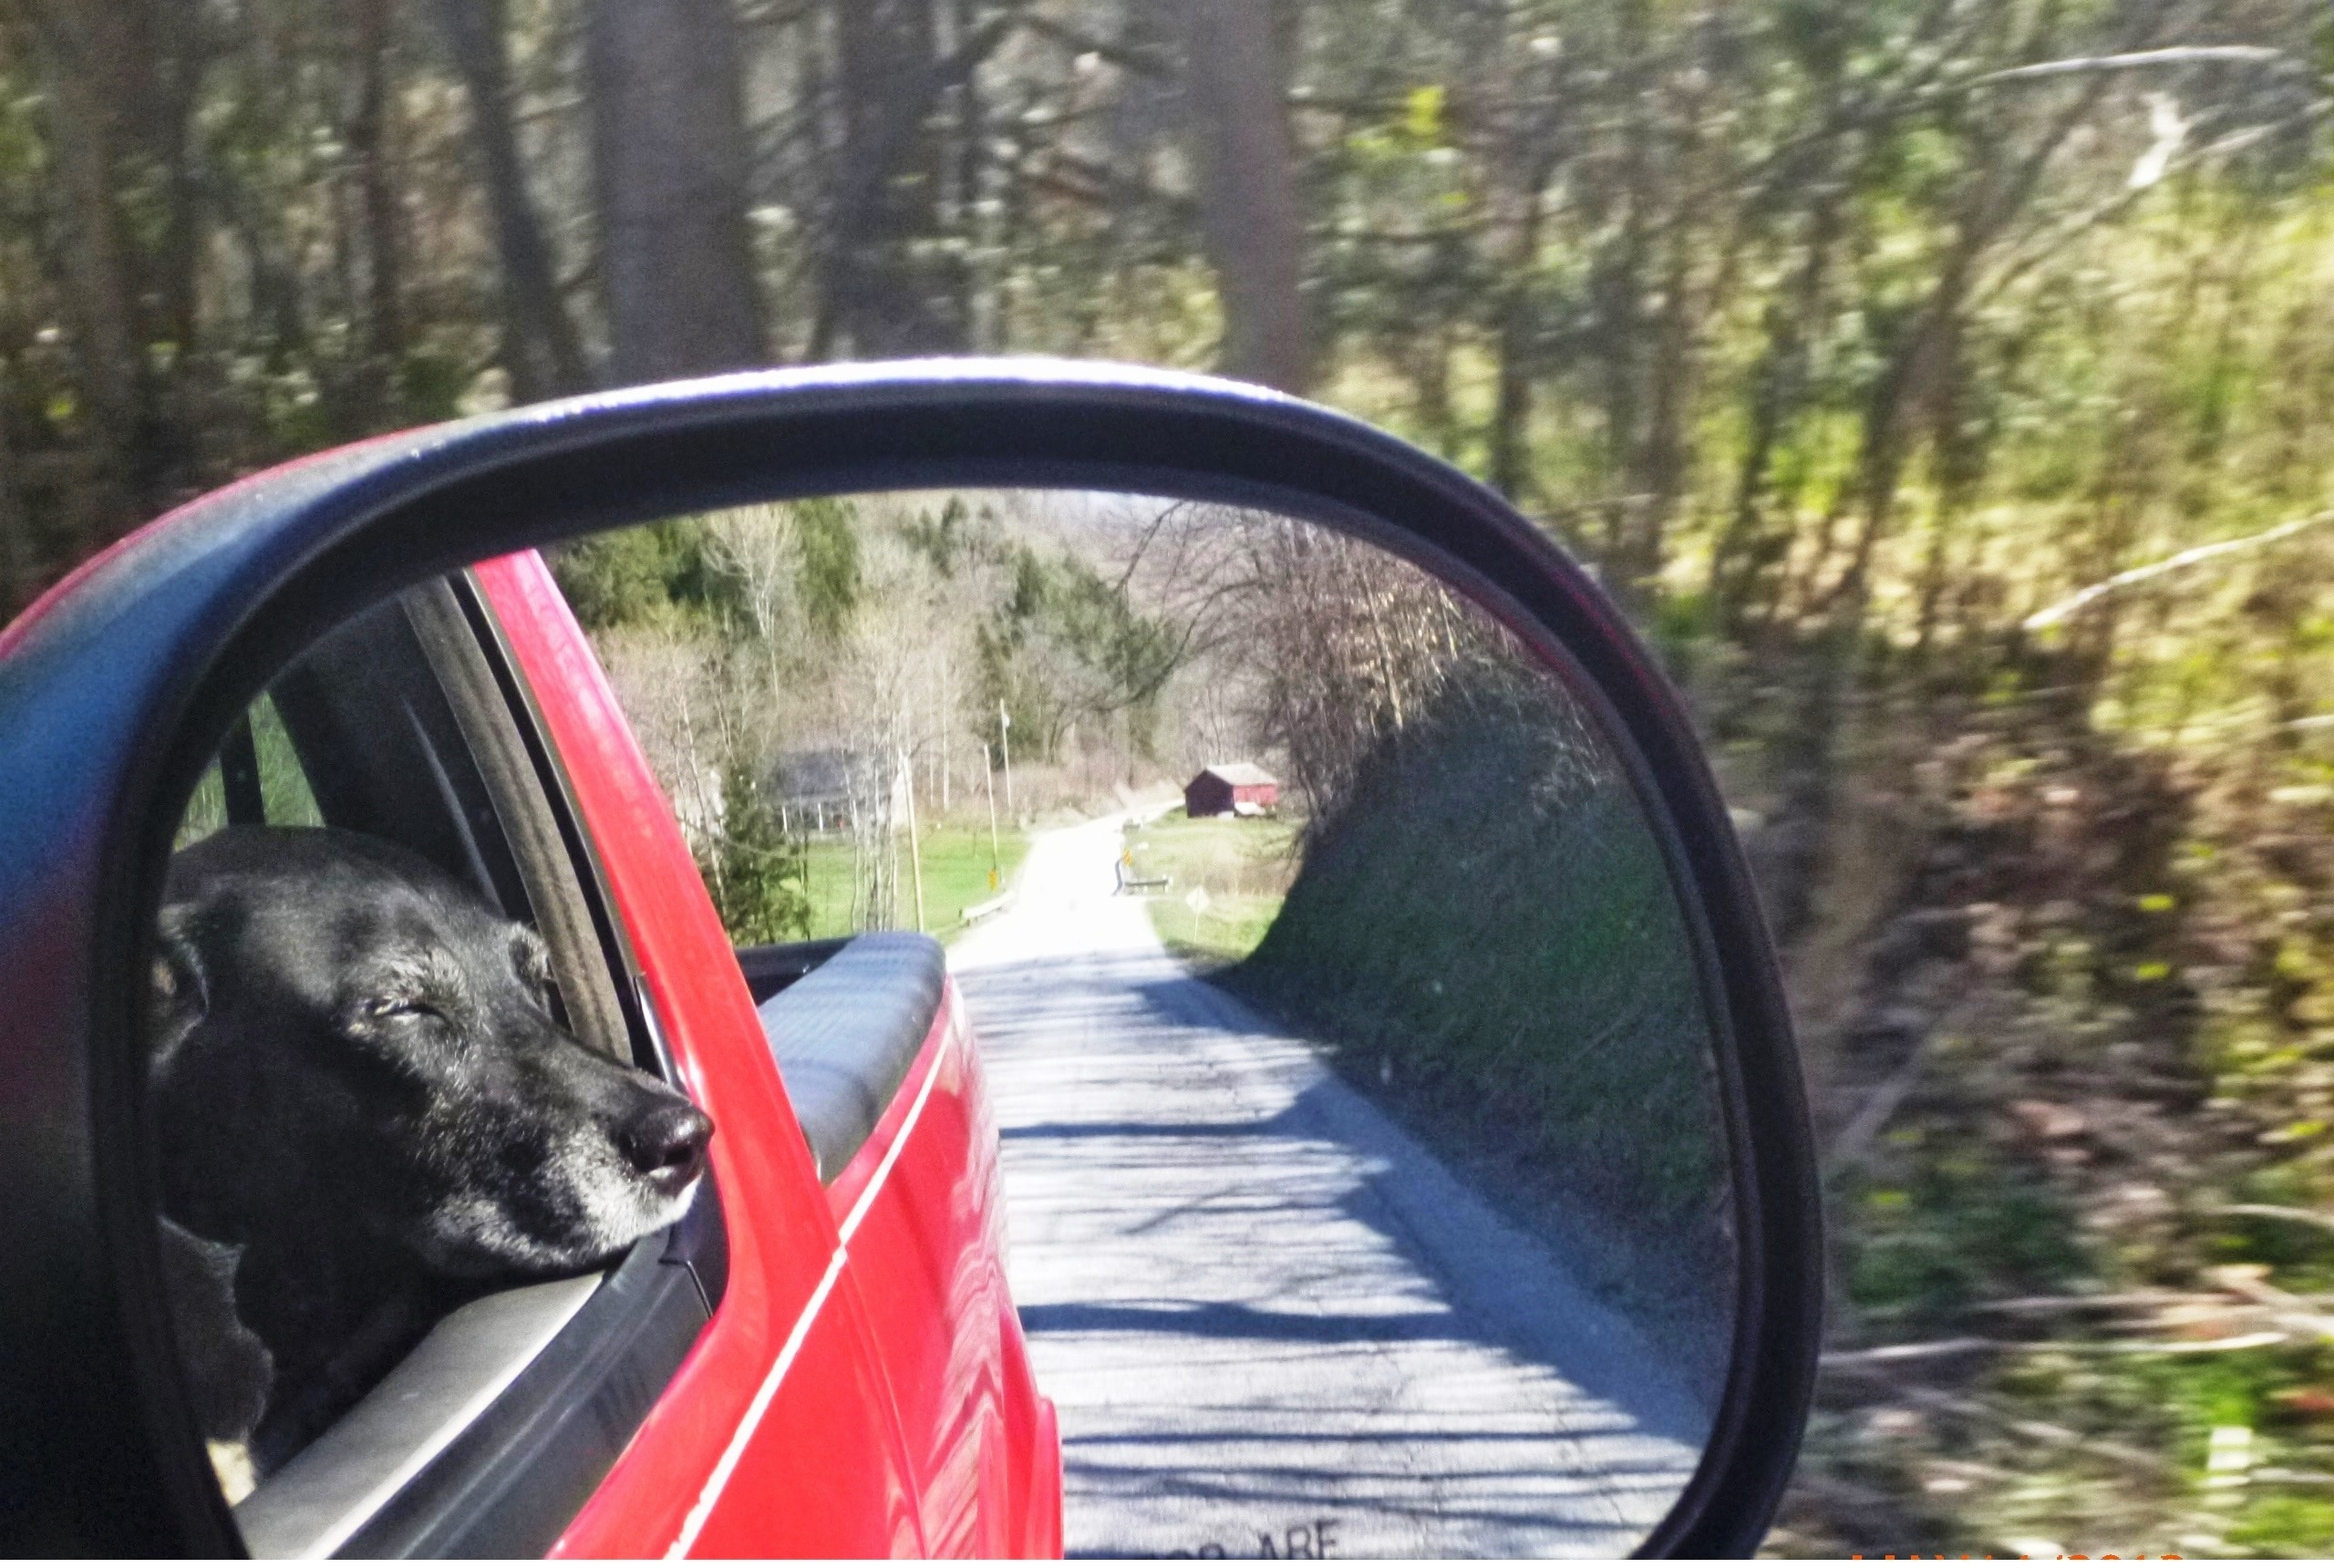 black lab dog in car in rear view mirror